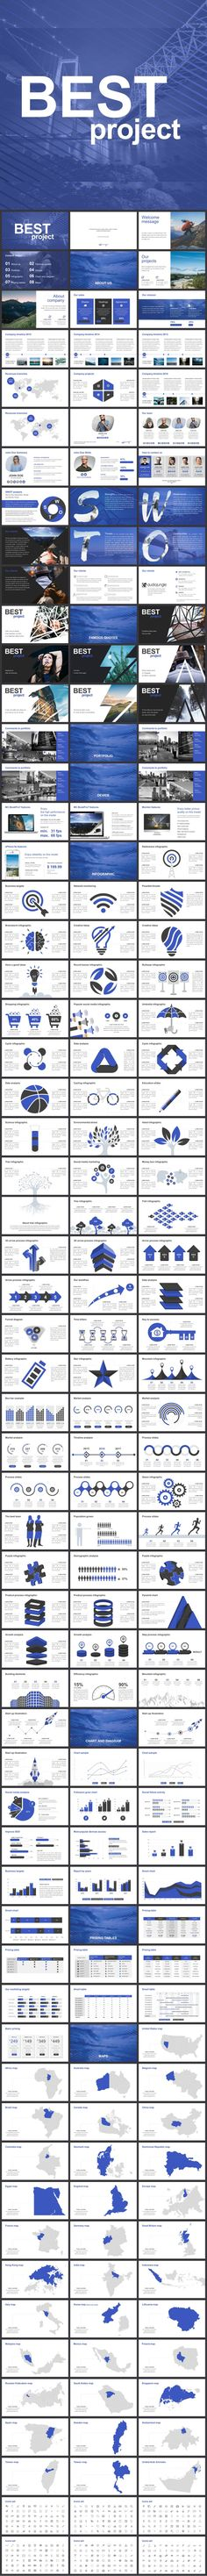 Best Project Powerpoint Template